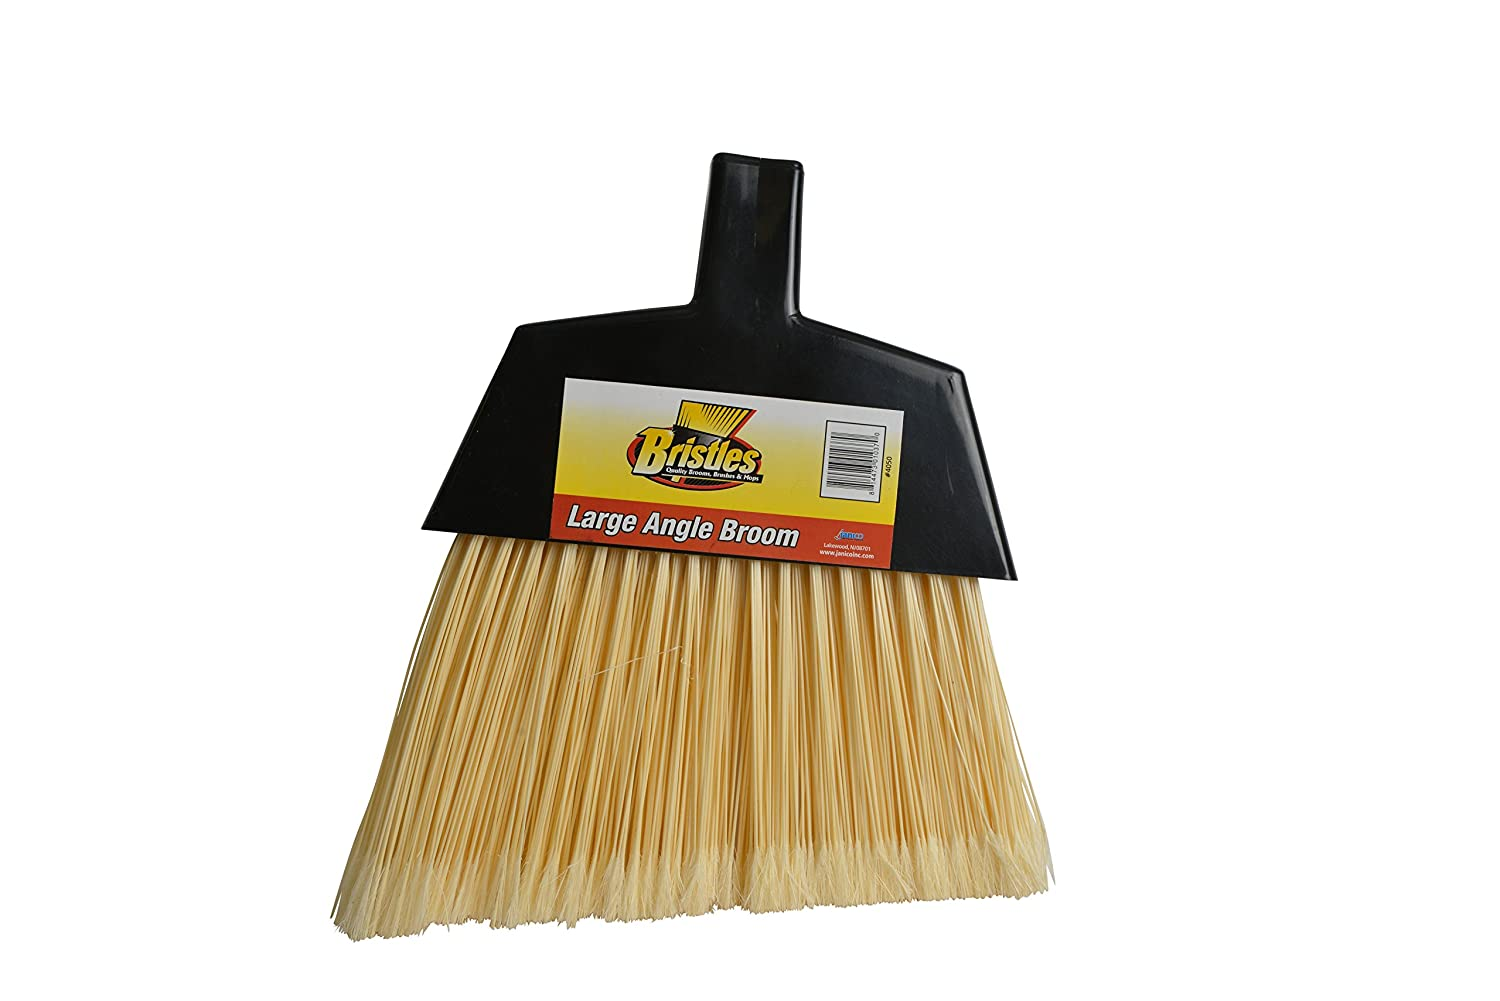 Janico 4050 48 in. Large Angle Broom Poly Bristles Metal Handle, Black - Case of 24 B01MU3LZDD